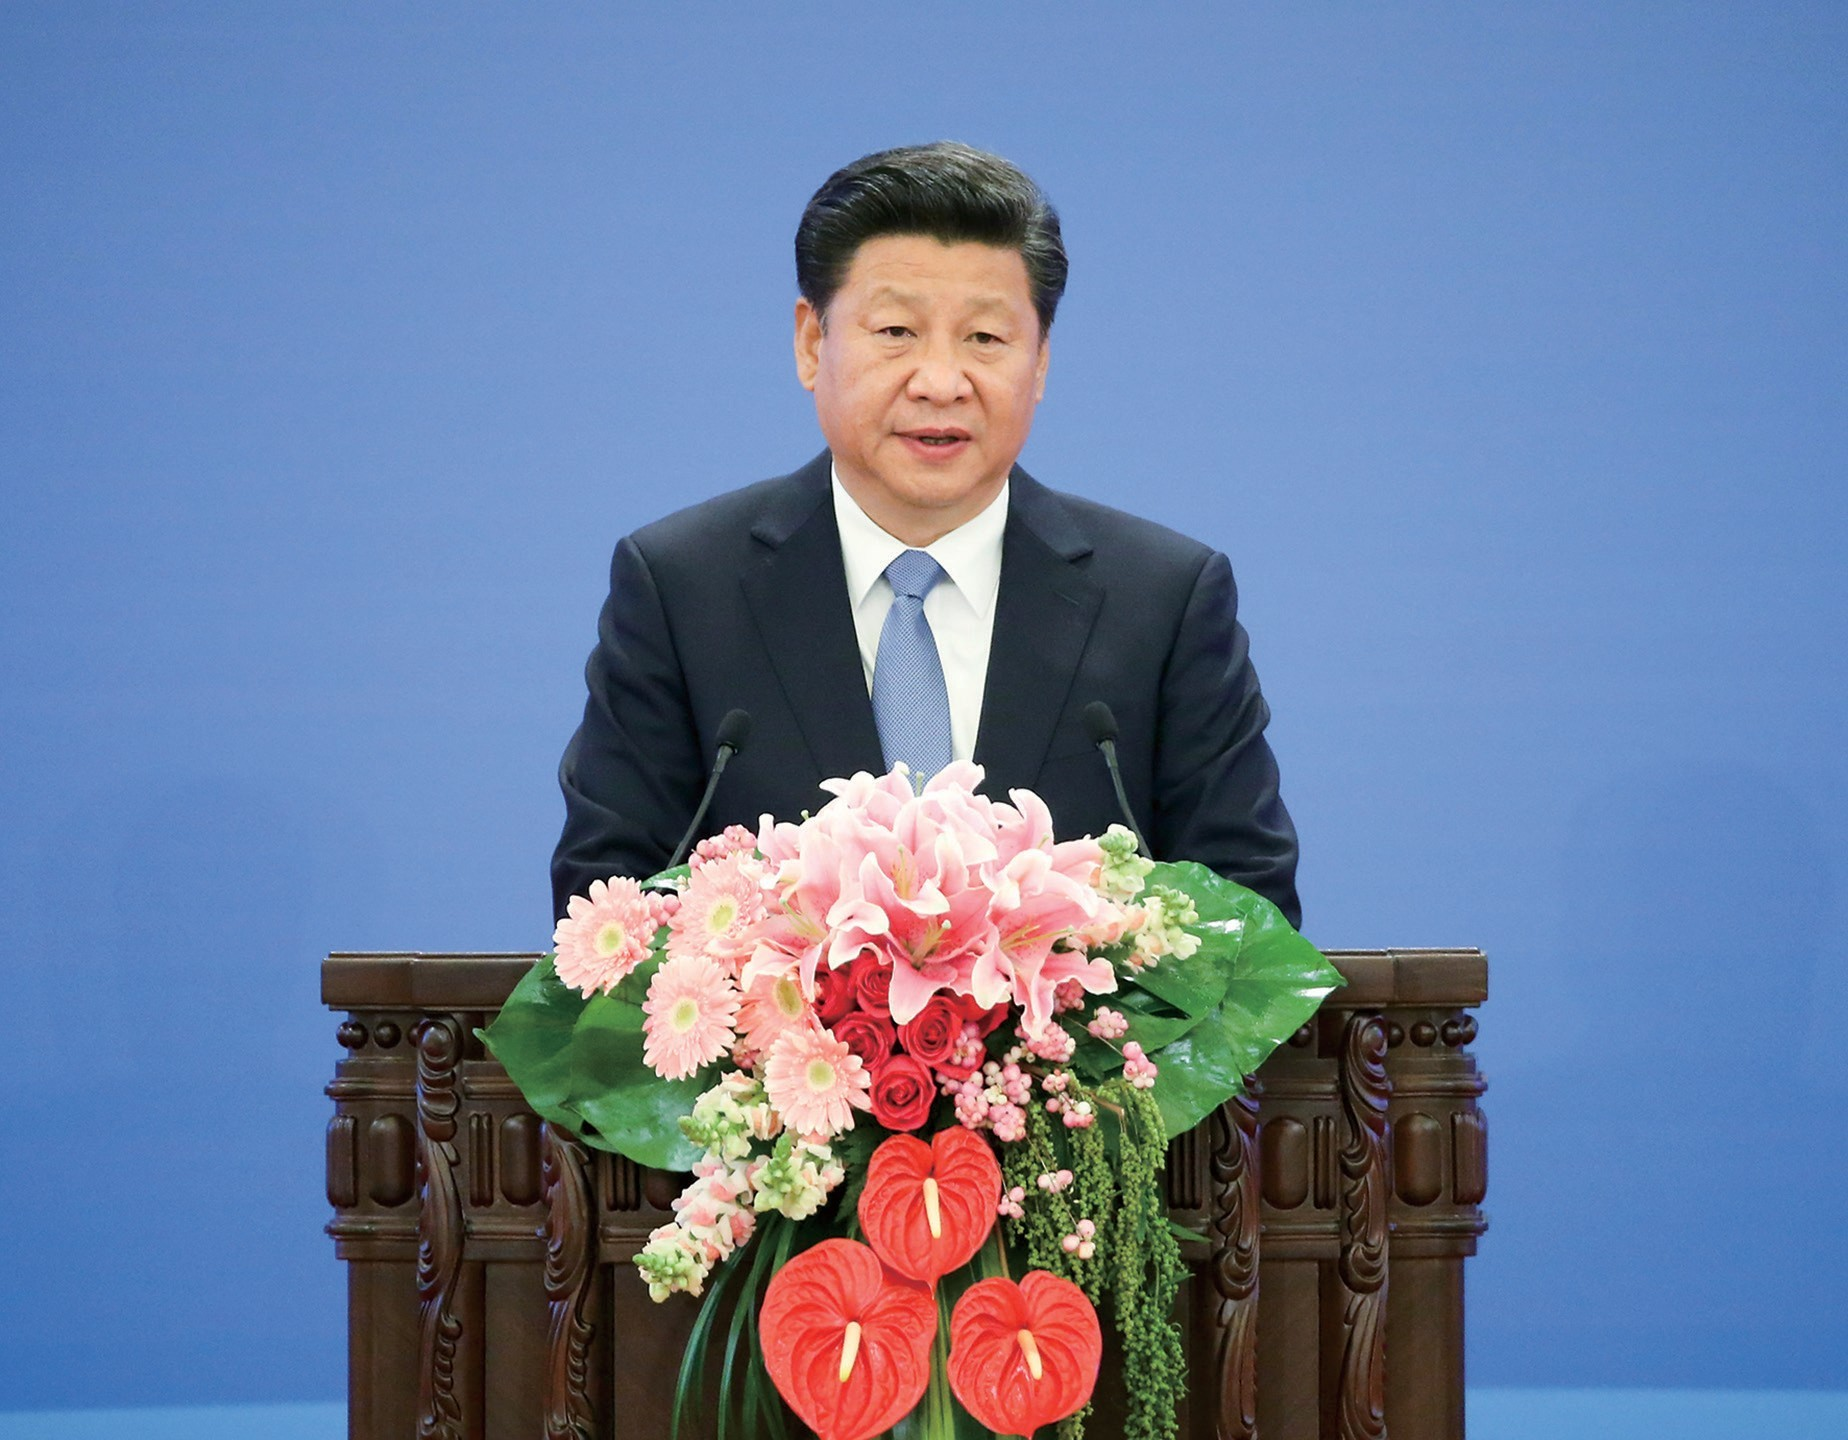 Xi: Poverty alleviation has always been a primary concern